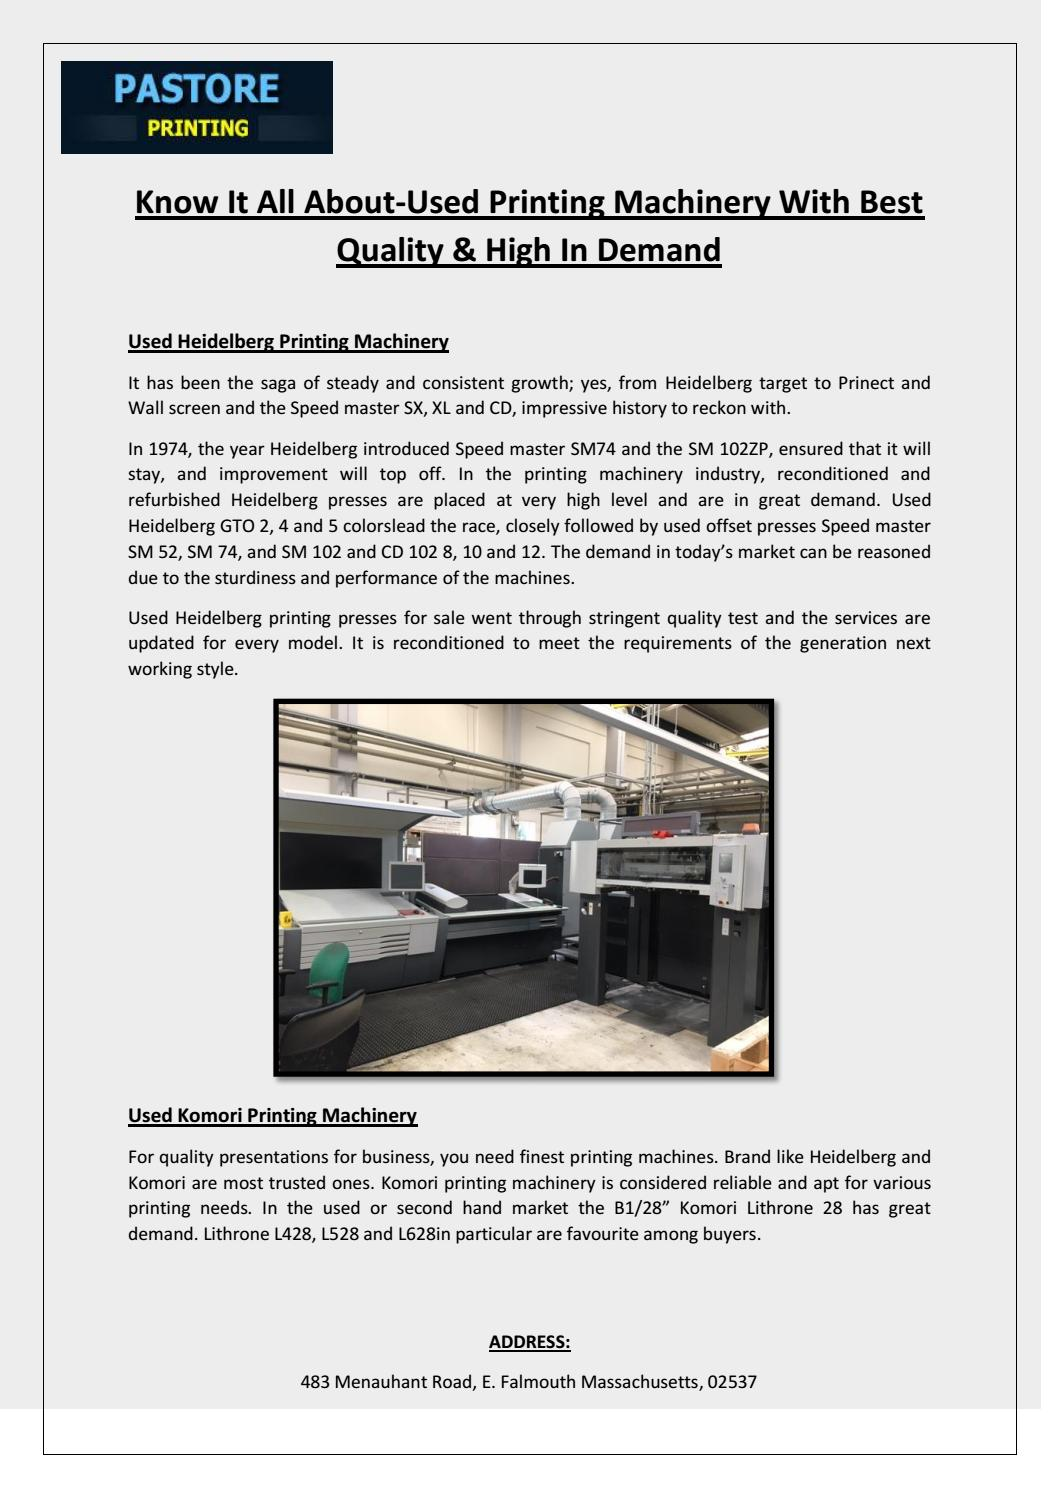 Know It All About-Used Printing Machinery With Best Quality & High